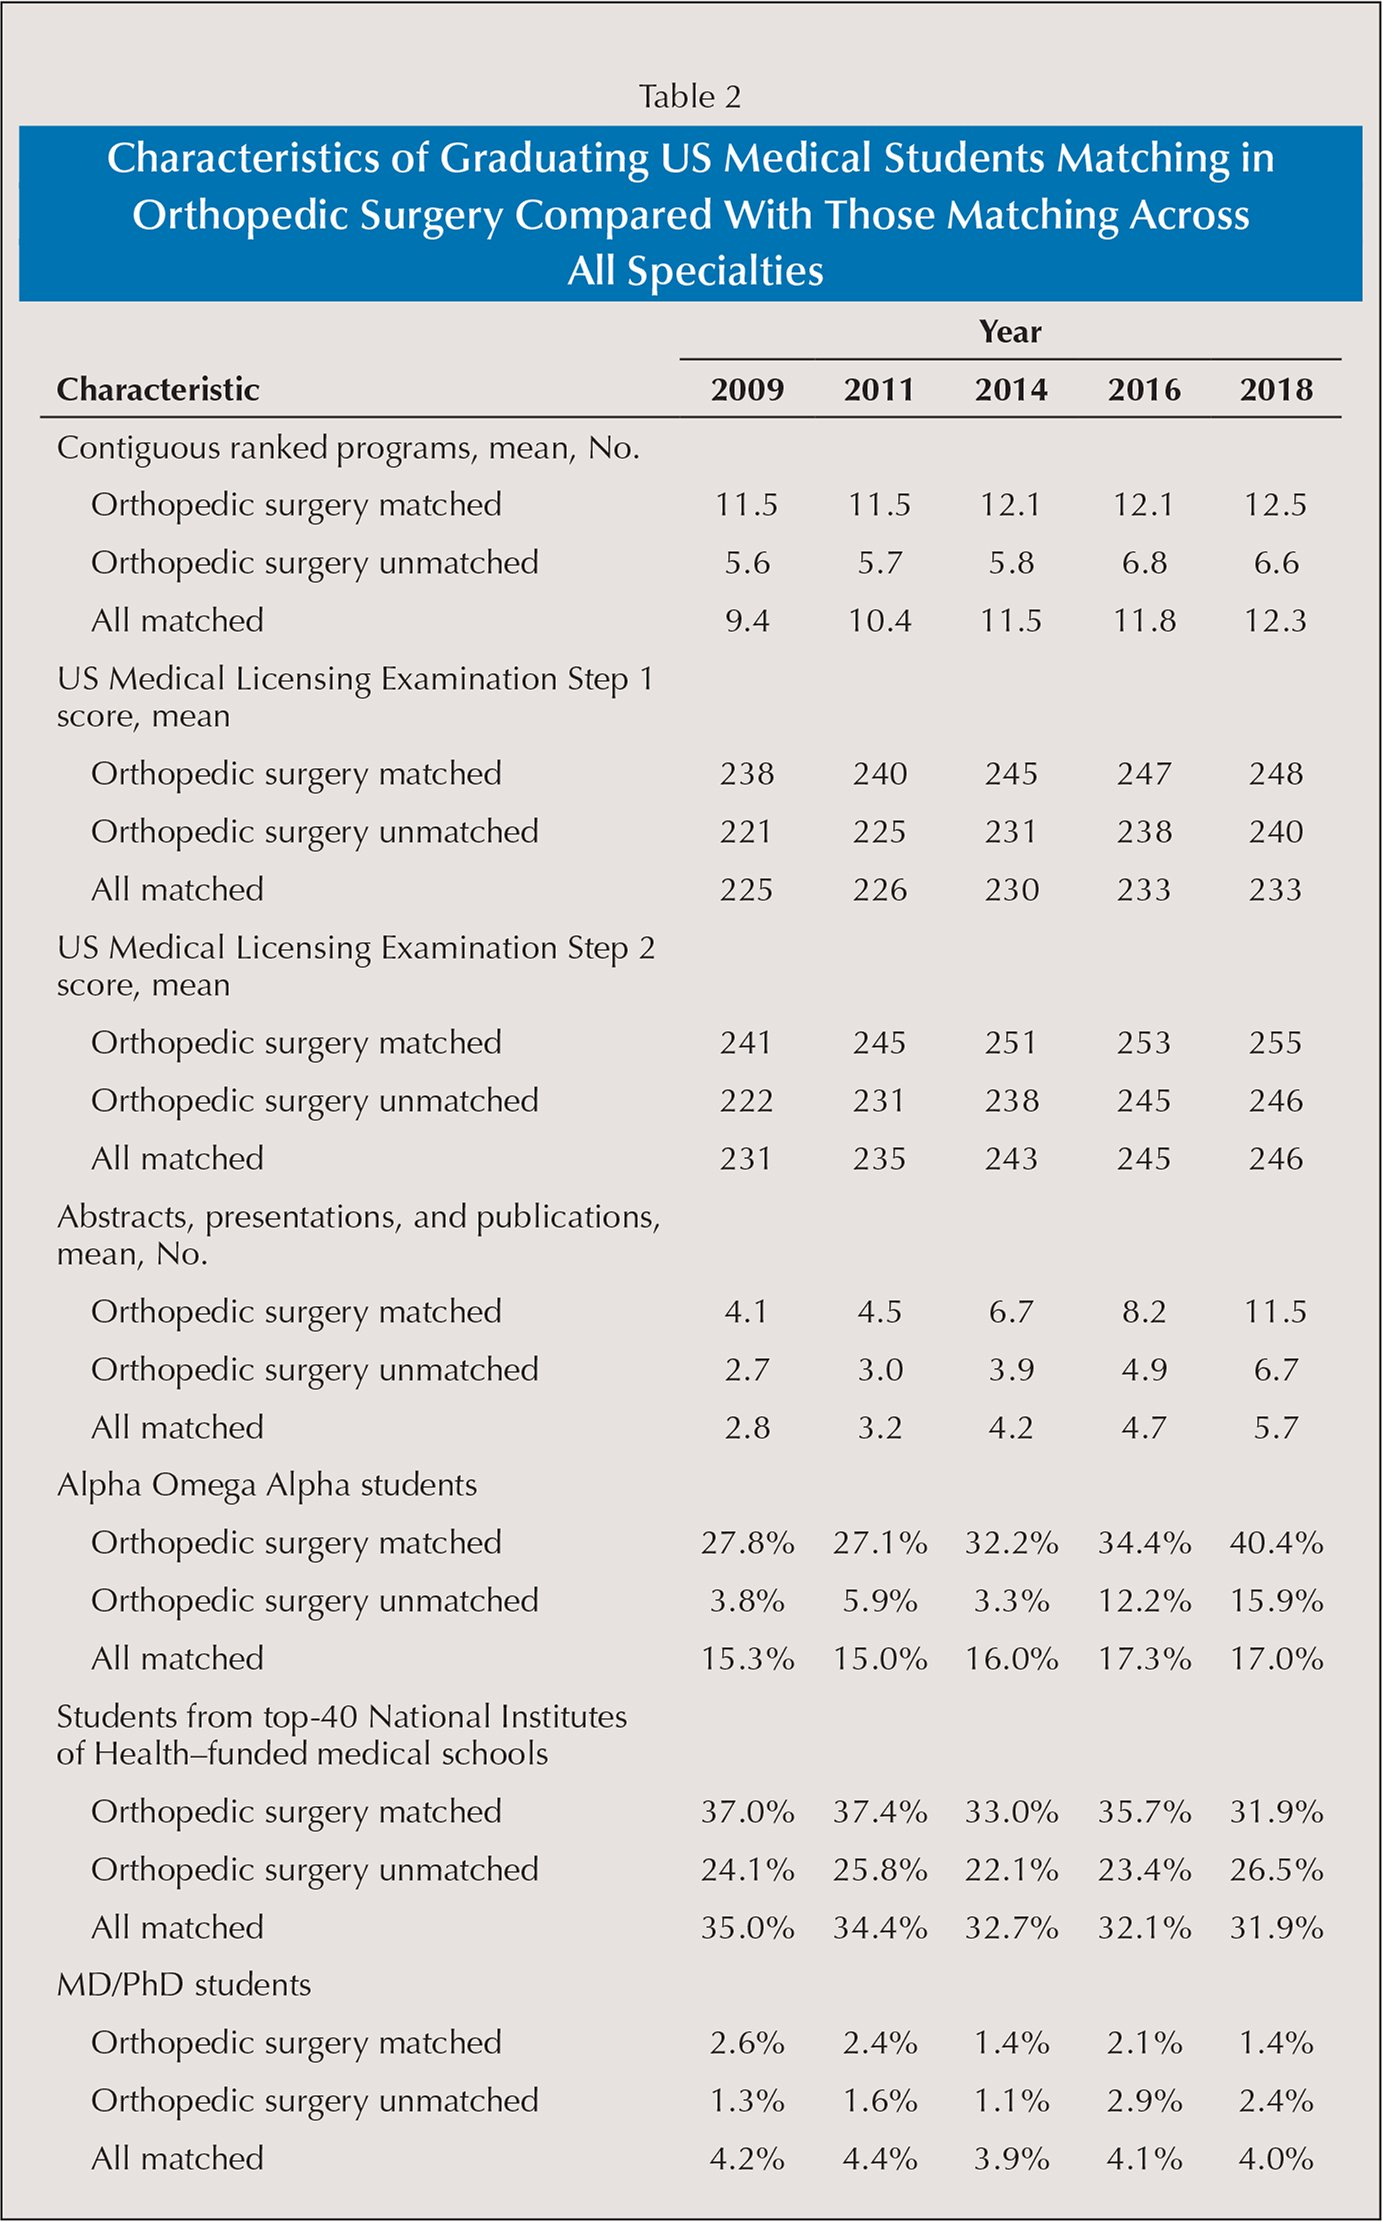 Characteristics of Graduating US Medical Students Matching in Orthopedic Surgery Compared With Those Matching Across All Specialties